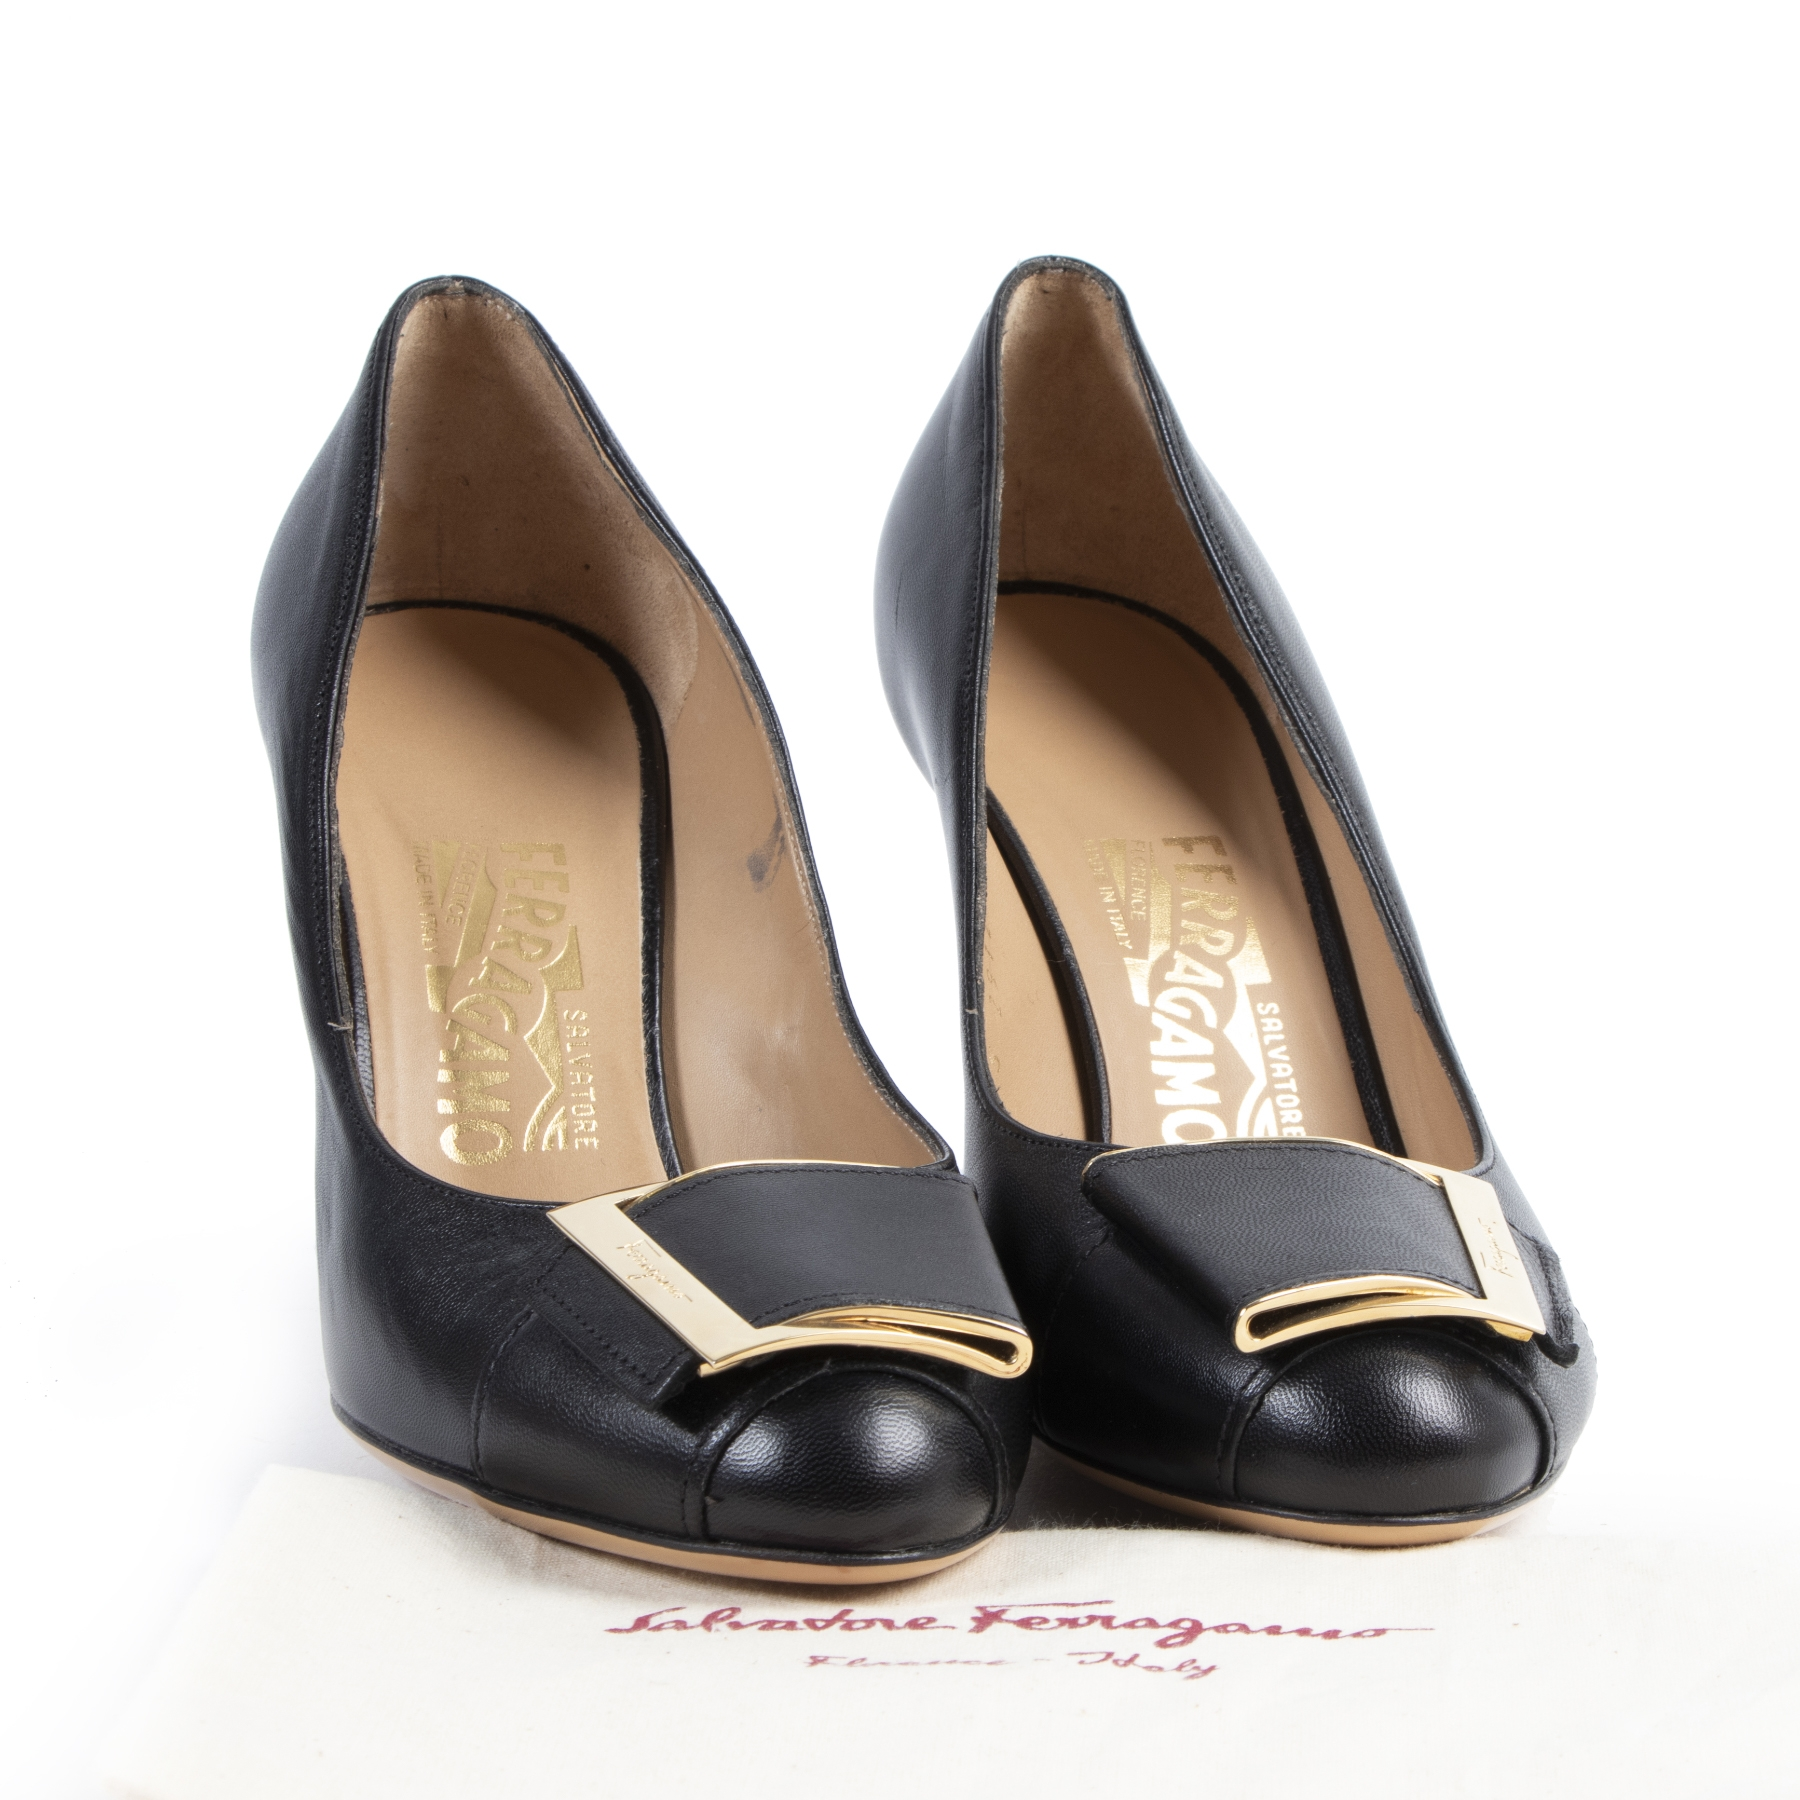 Authentic secondhand Salvatore Ferragamo Black Heels - Size 36,5 designer shoes fashion luxury vintage webshop safe secure online shopping